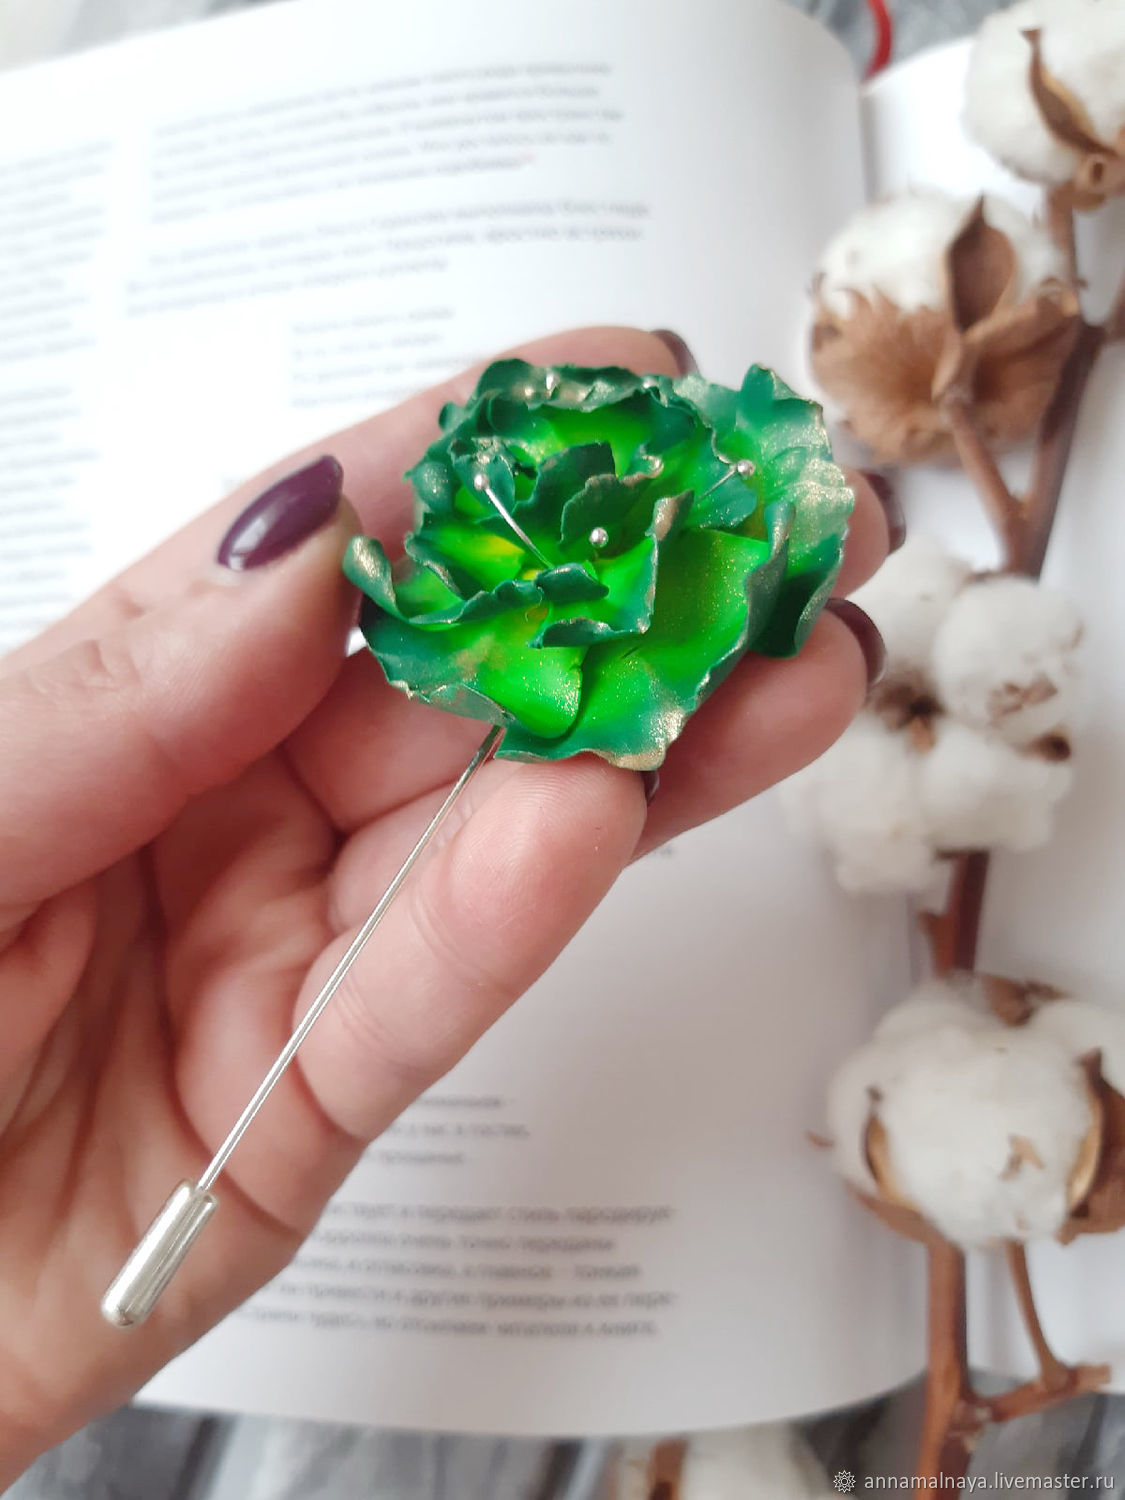 Brooch needle Green flower made of polymer clay, Brooches, Domodedovo,  Фото №1